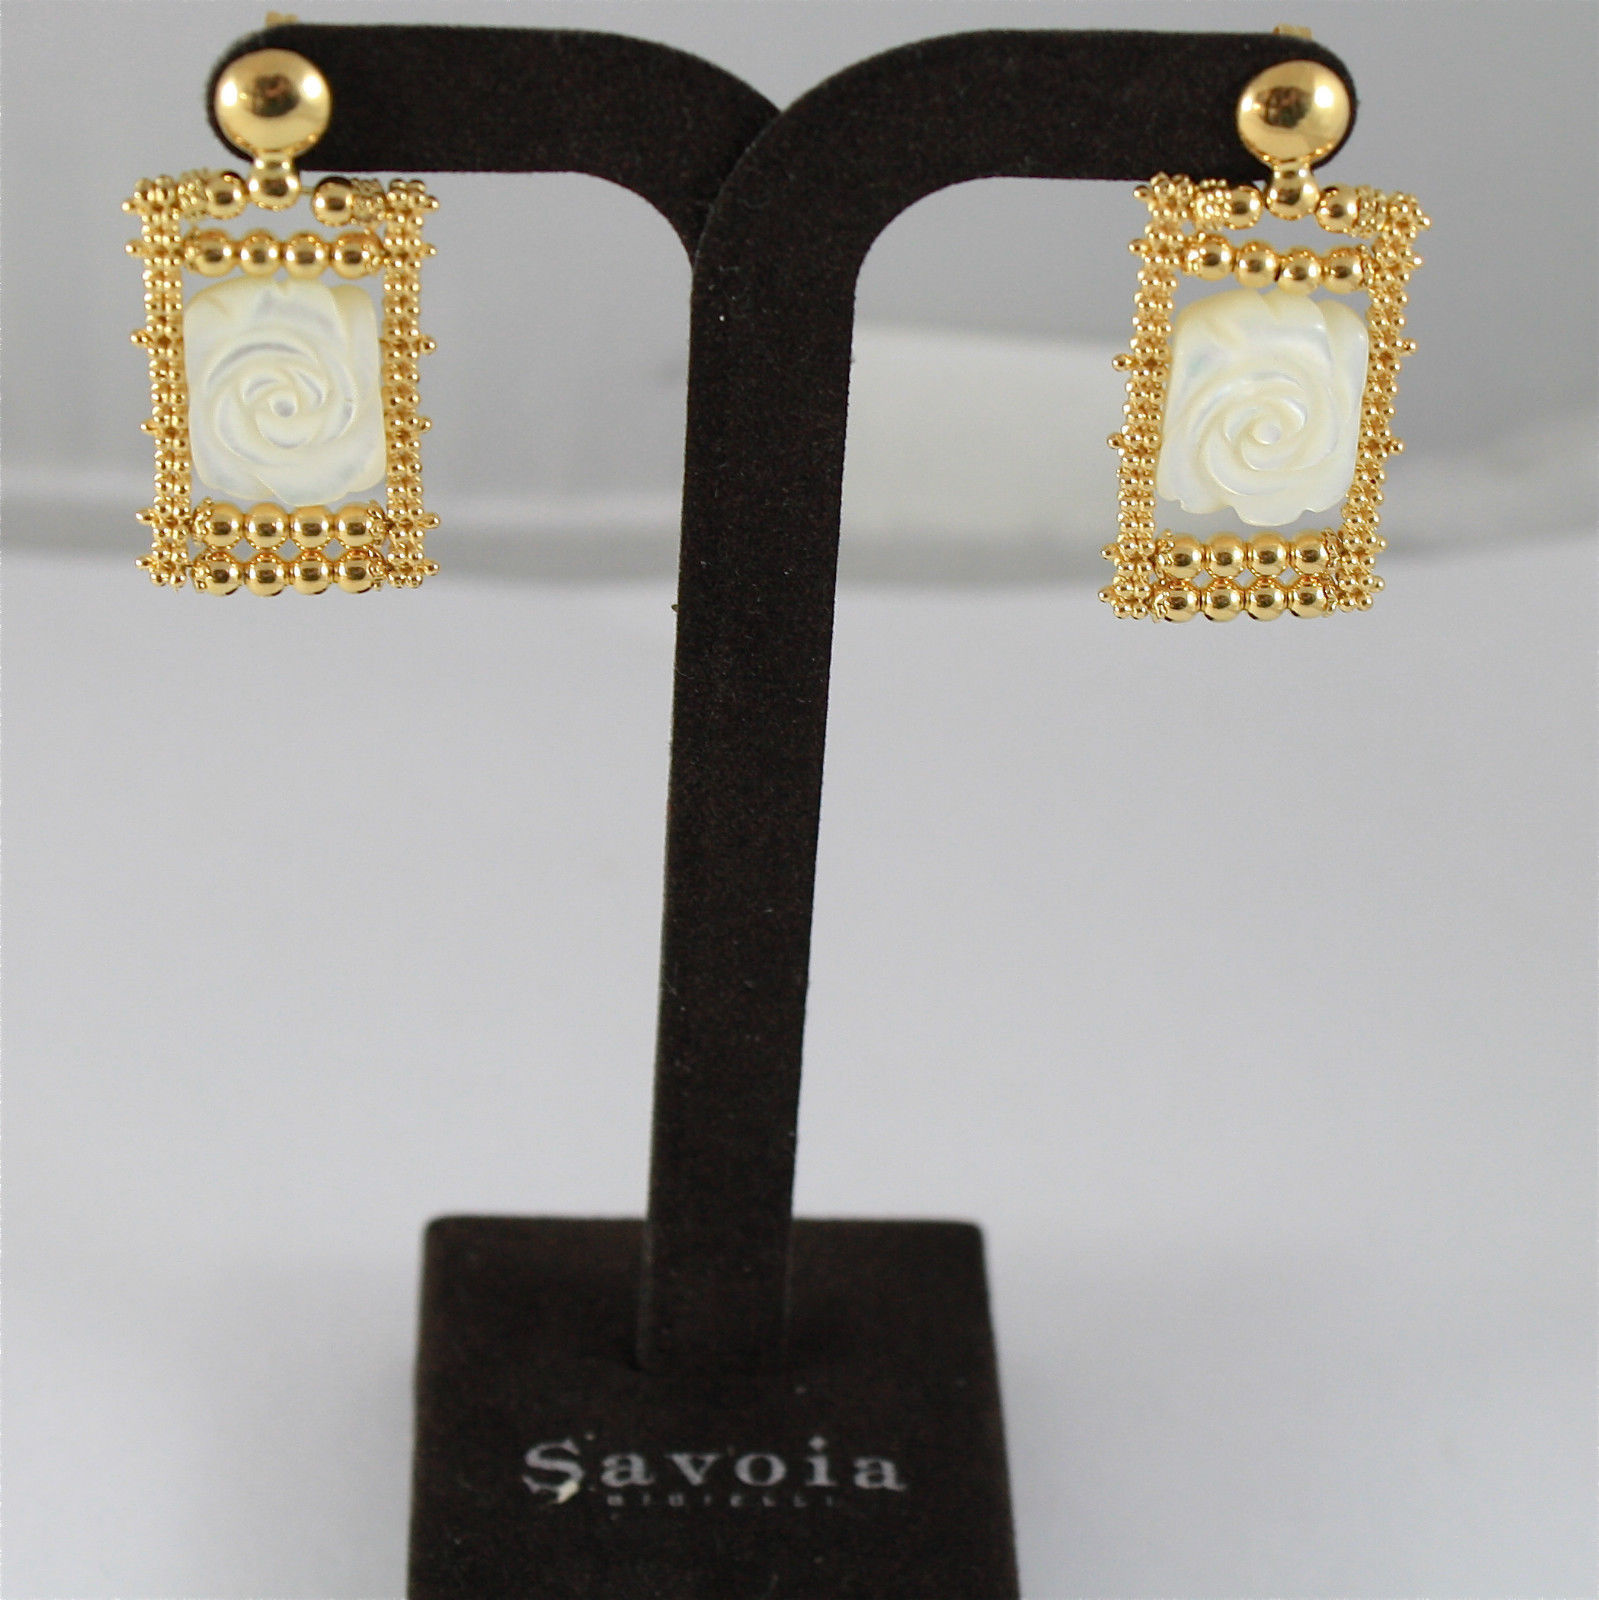 925 SILVER EARRINGS, GOLD PL,MOTHER OF PEARL, ROSE CUT, MADE IN ITALY BY SAVOIA